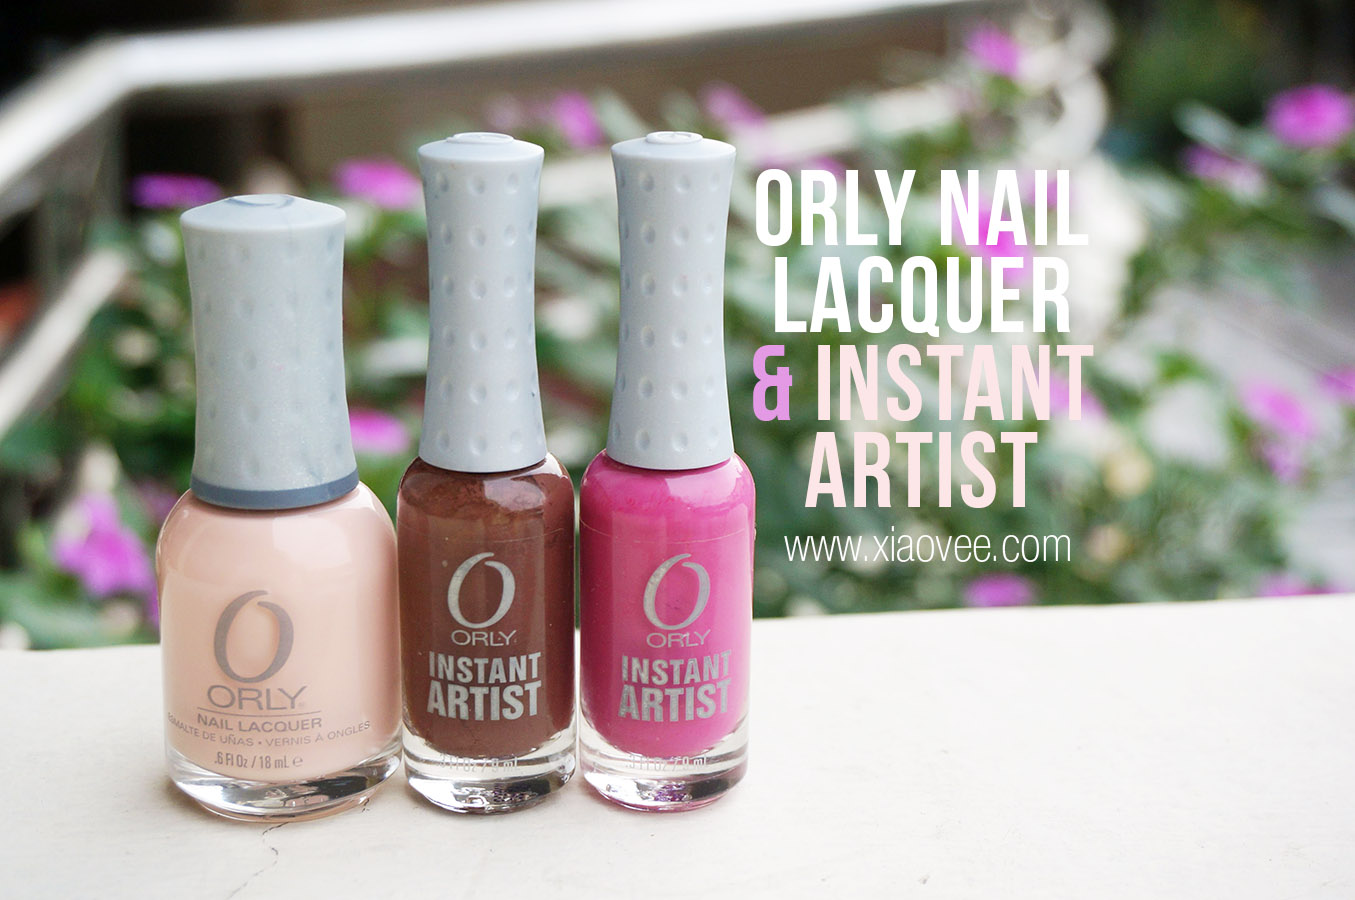 Orly Nail Lacquer Prelude to A Kiss, Orly Instant Artist Rose, Orly Instant Artist Chocolate review swatch